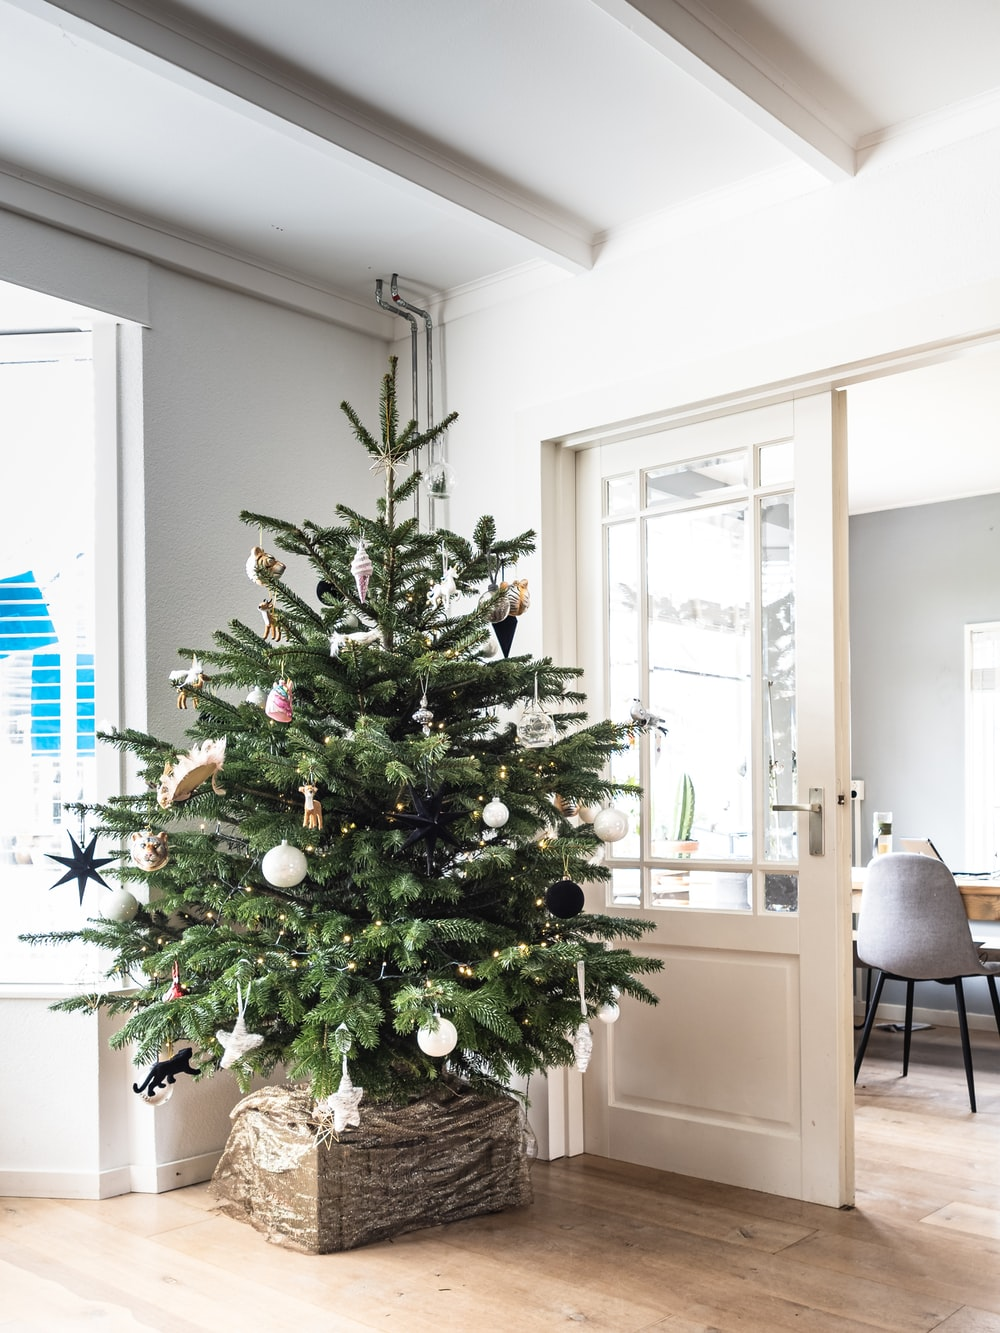 green christmas tree with baubles near white wooden framed glass door